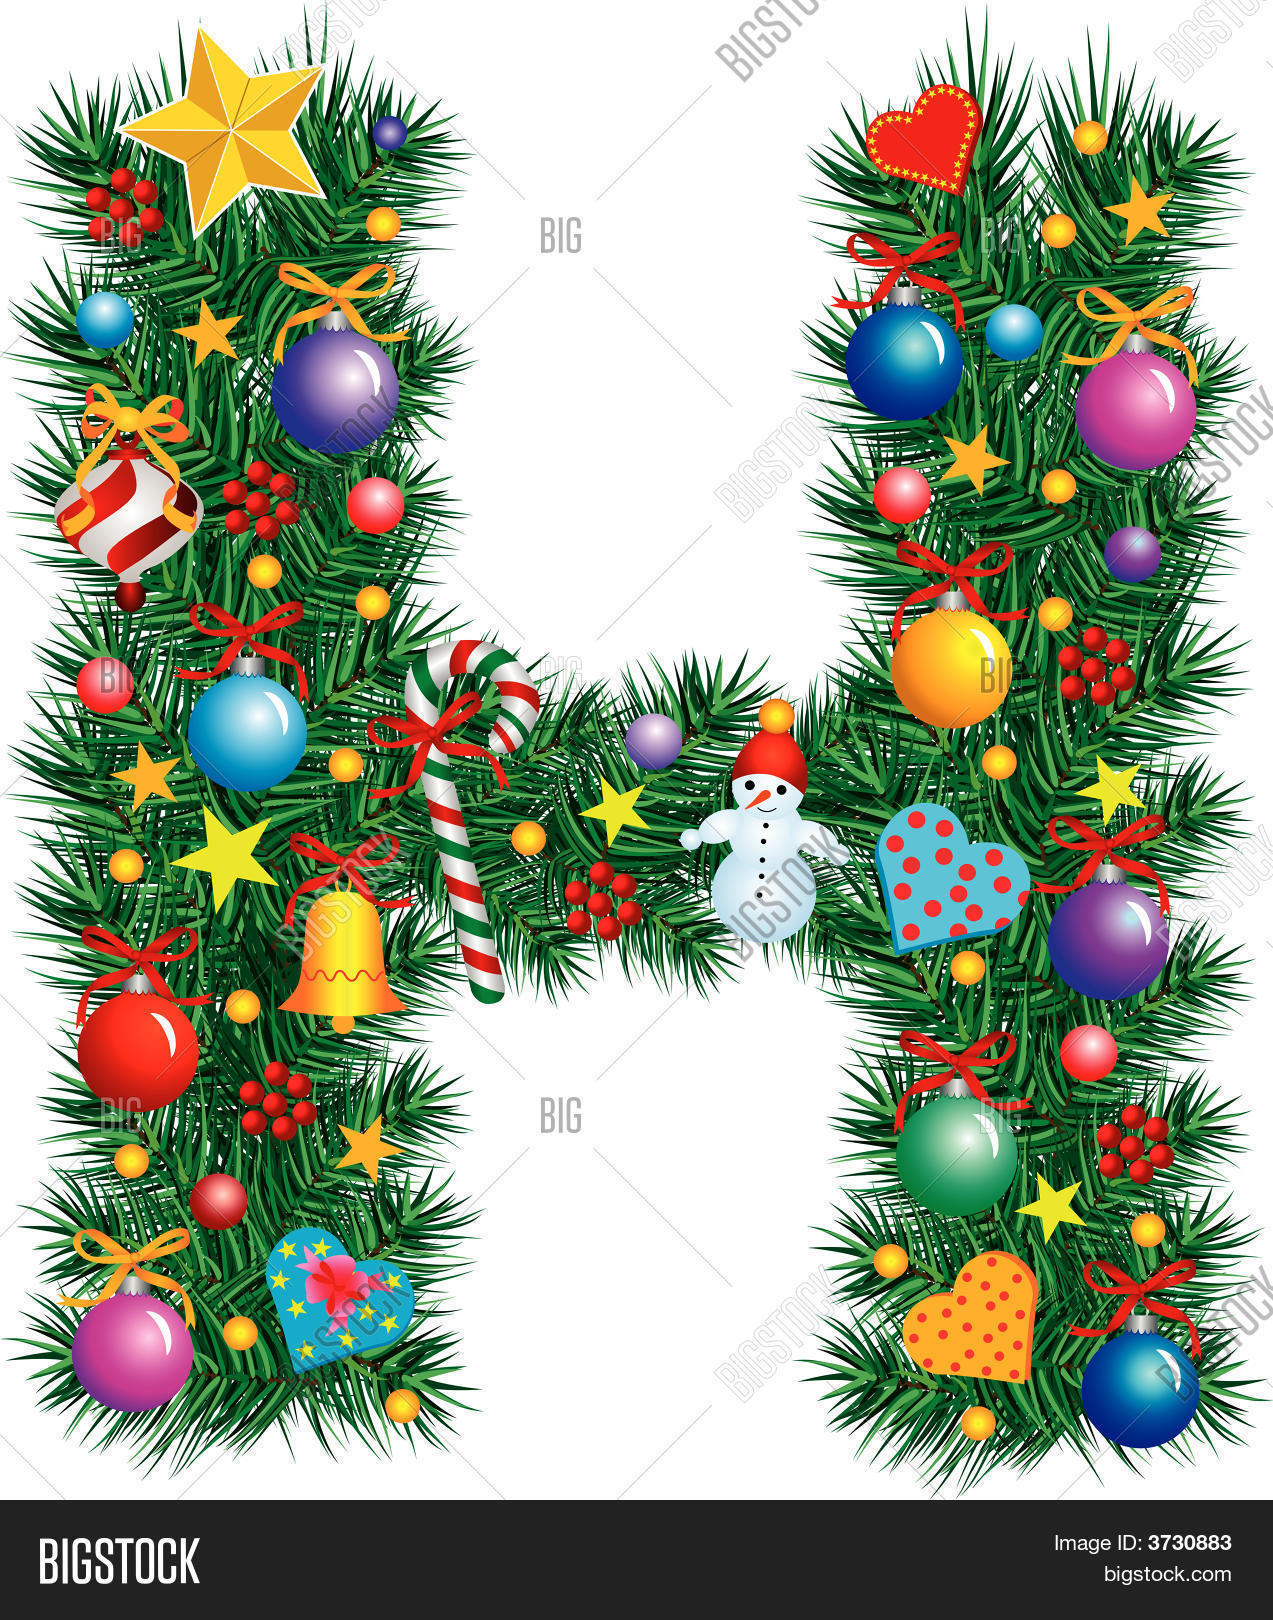 Tree Branch Decorations In The Home Alphabet Letter H Christmas Vector Amp Photo Bigstock